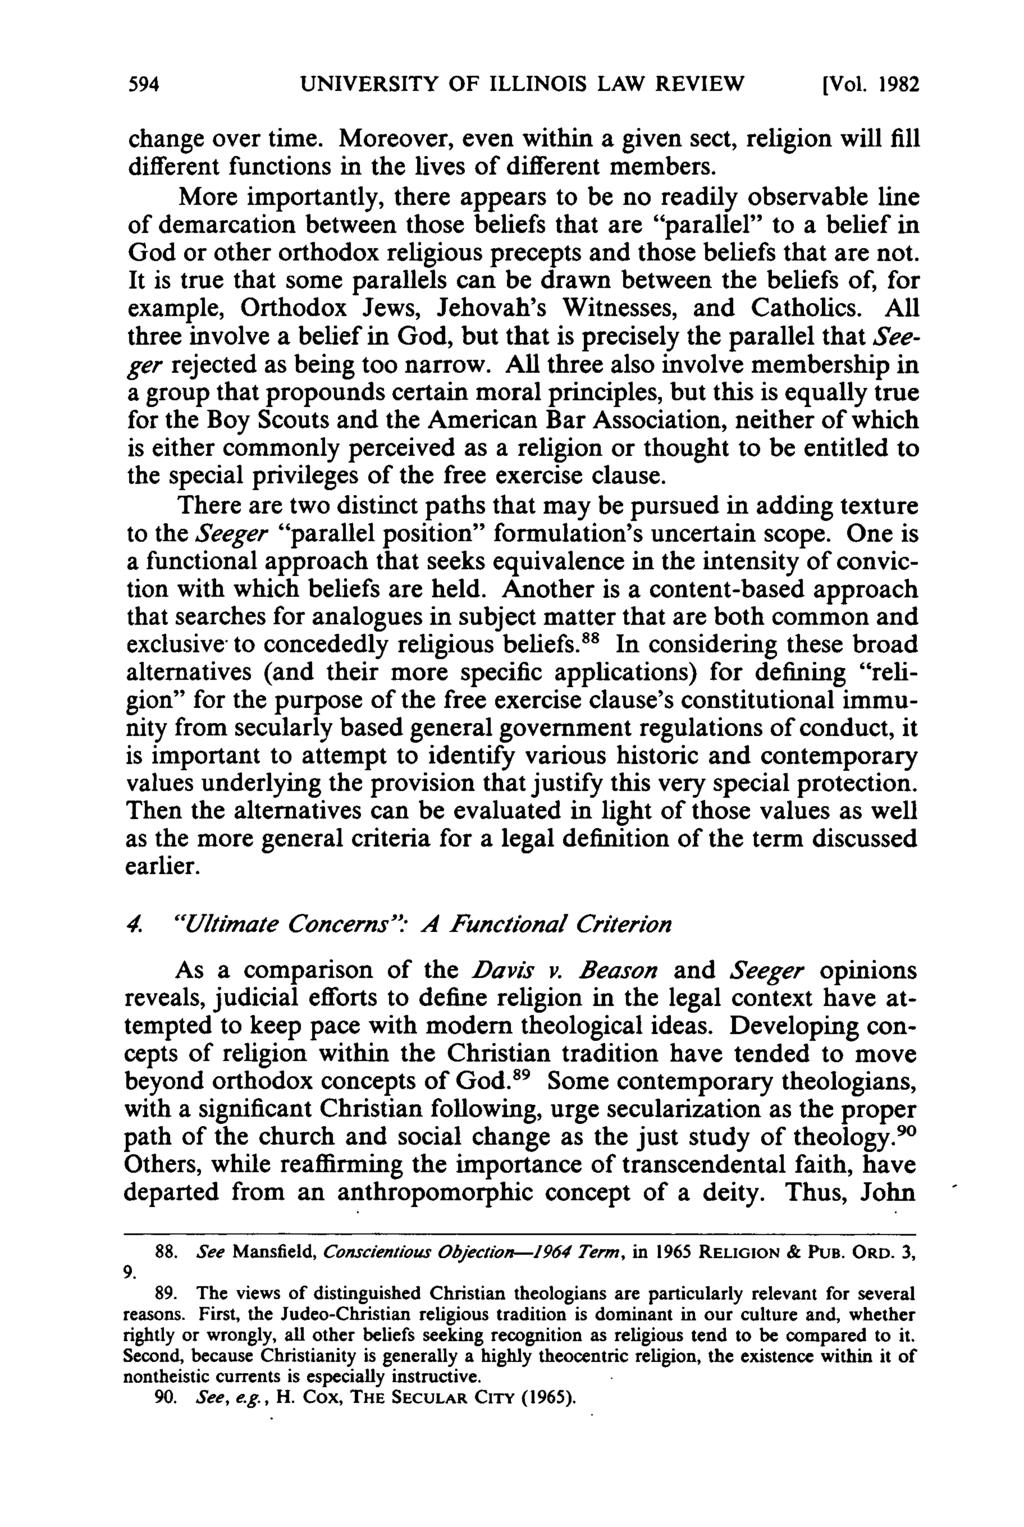 UNIVERSITY OF ILLINOIS LAW REVIEW [Vol. 1982 change over time. Moreover, even within a given sect, religion will fill different functions in the lives of different members.